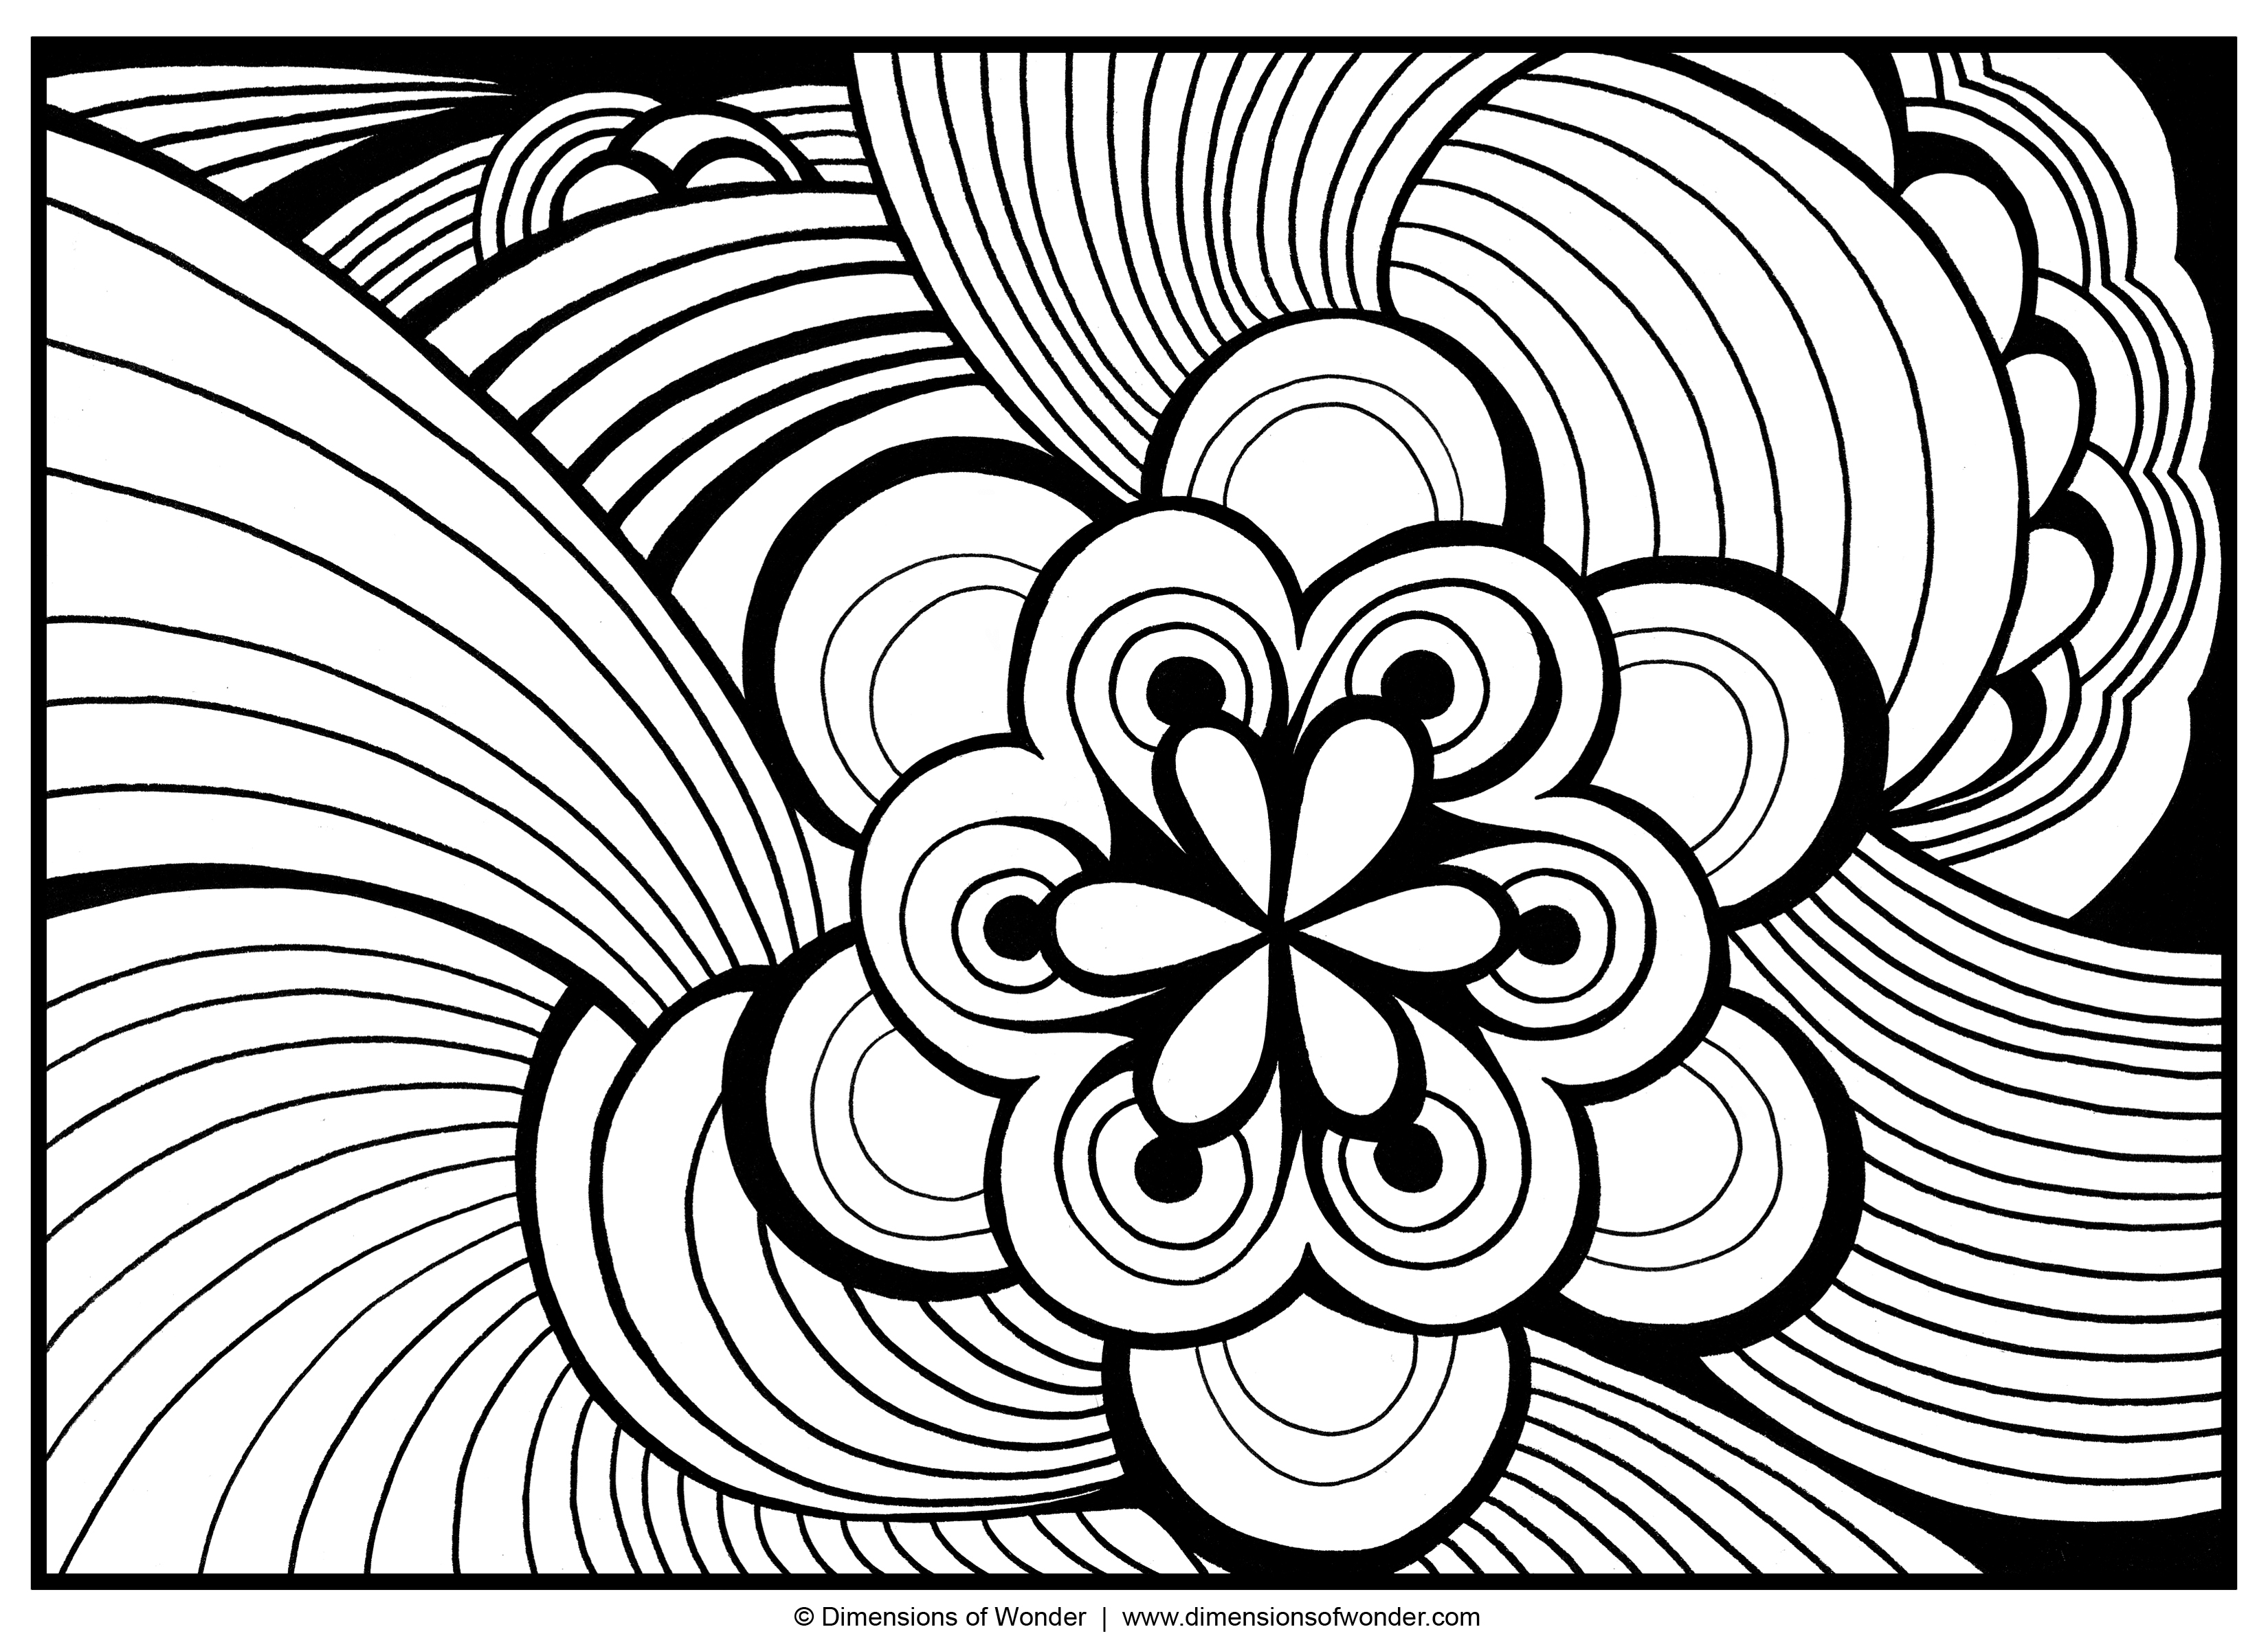 Abstract coloring #6, Download drawings